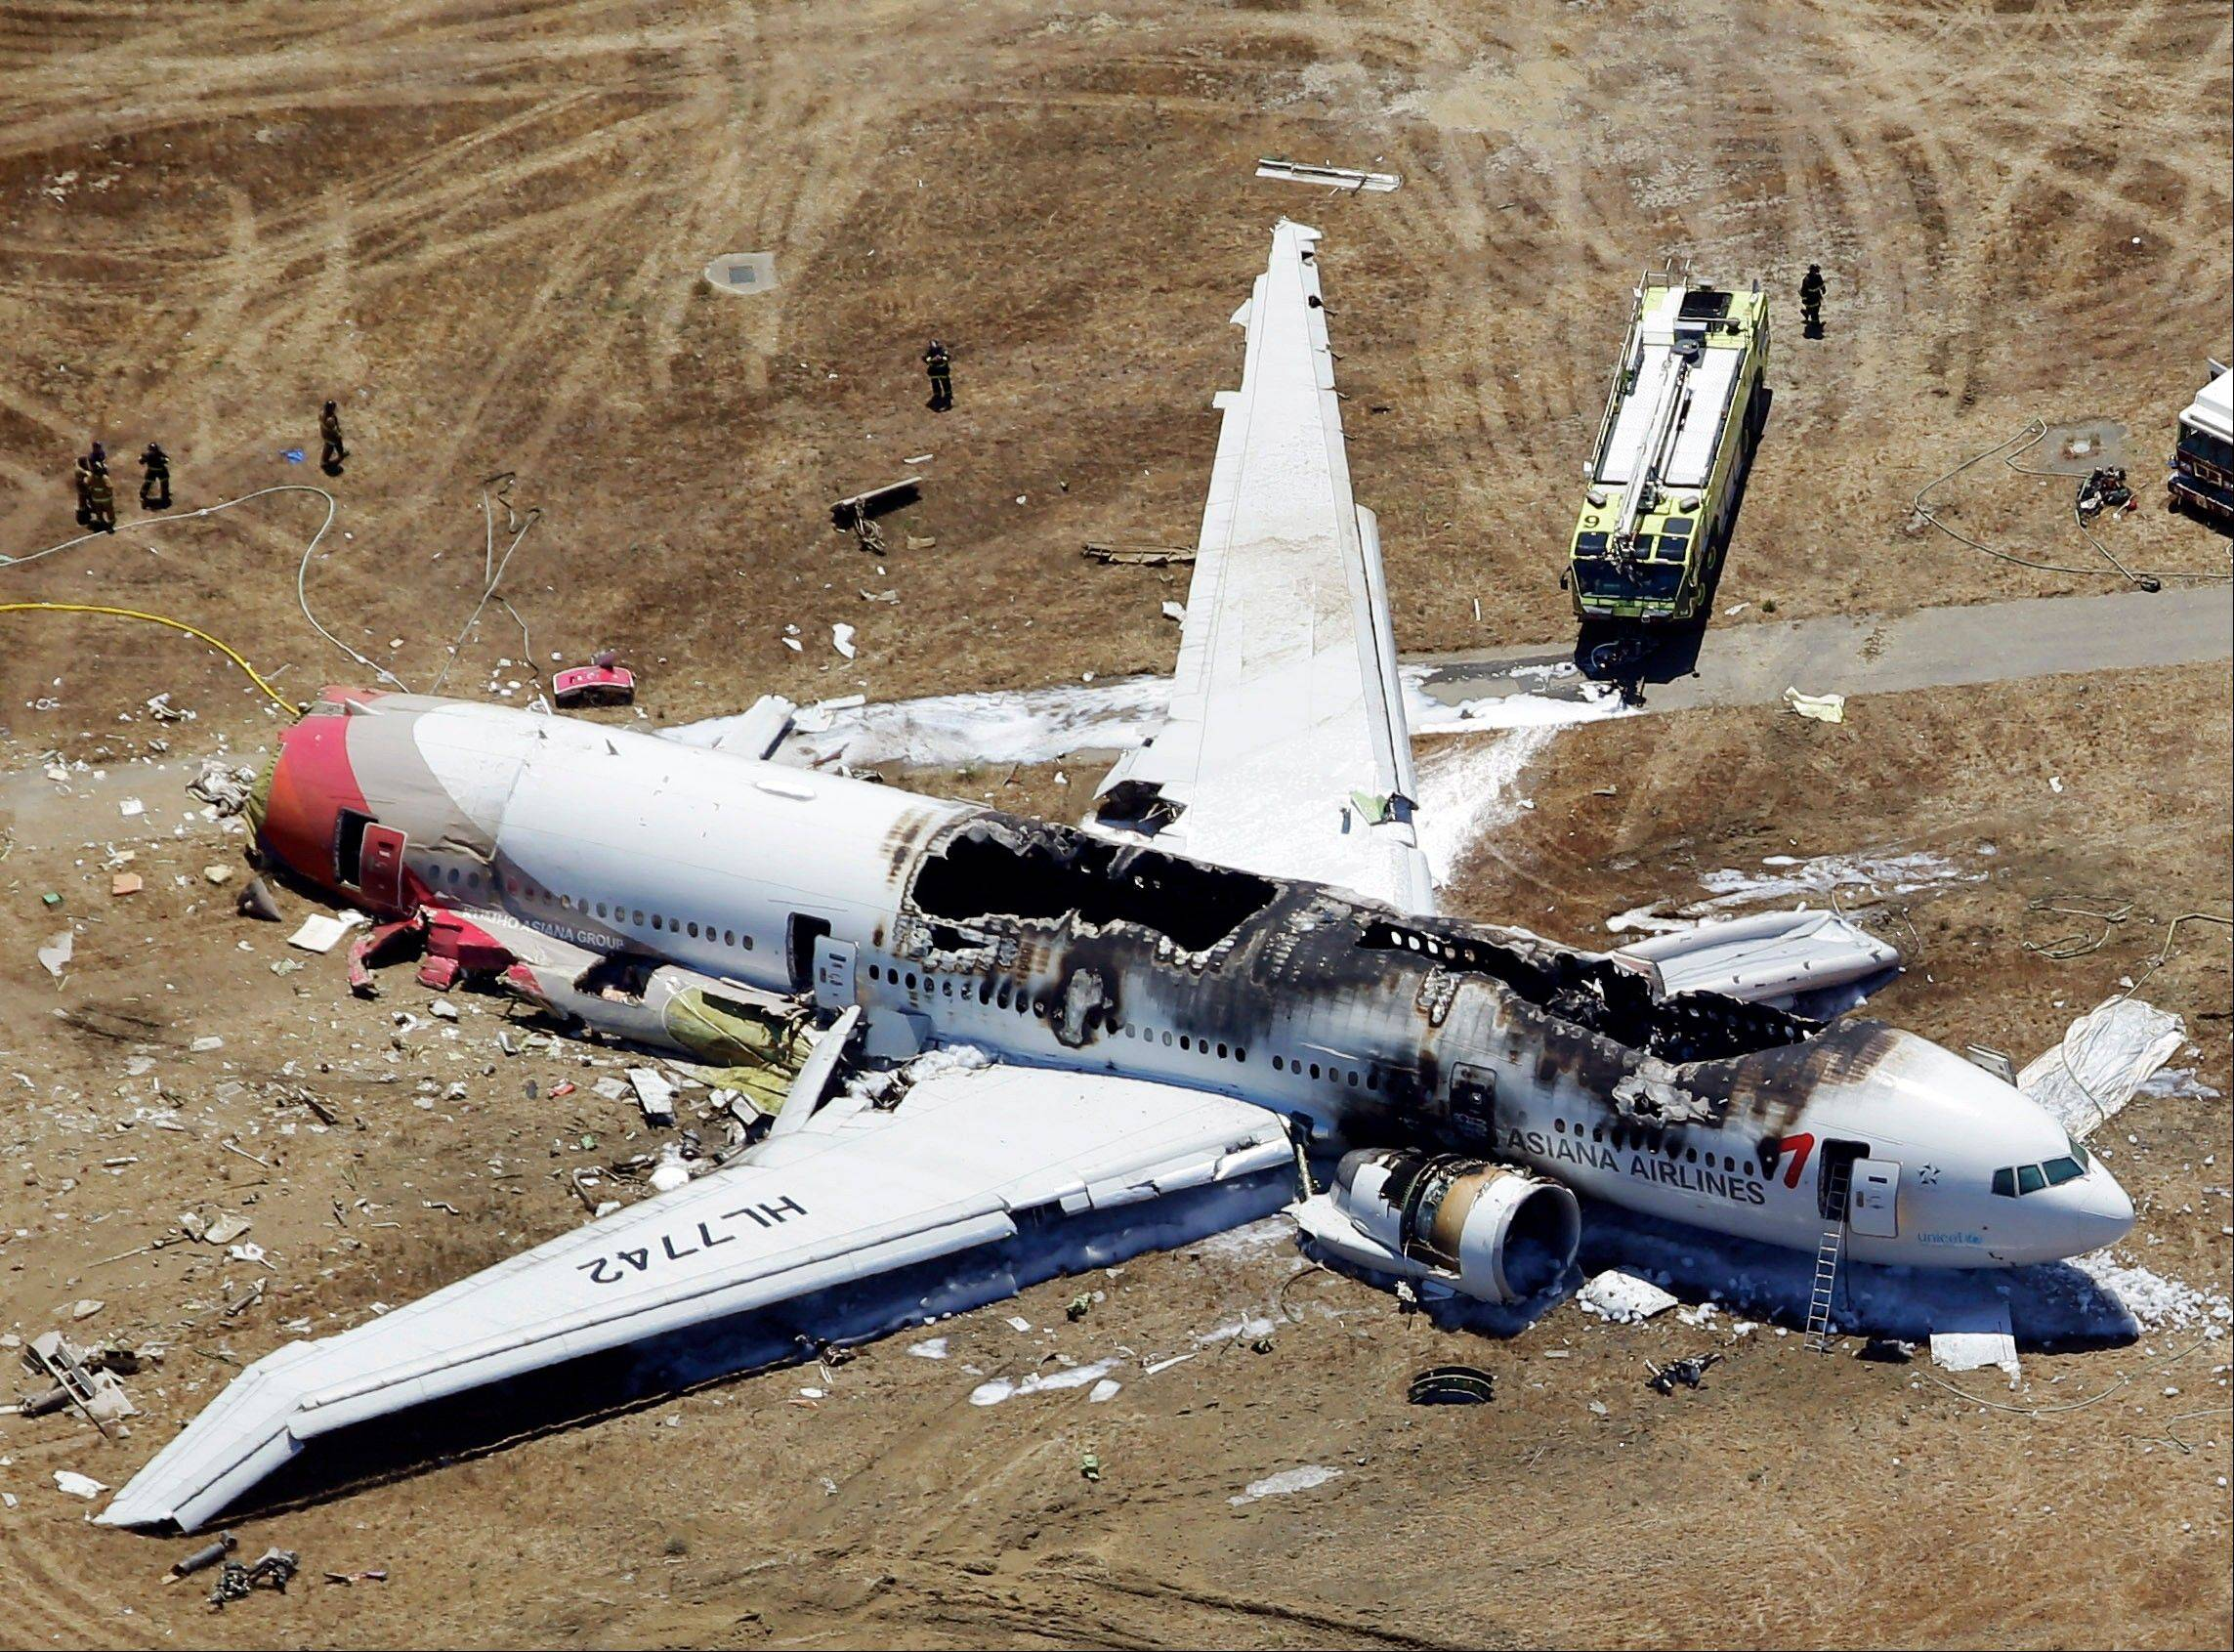 This aerial photo shows the wreckage of the Asiana Flight 214 airplane after it crashed at the San Francisco International Airport.